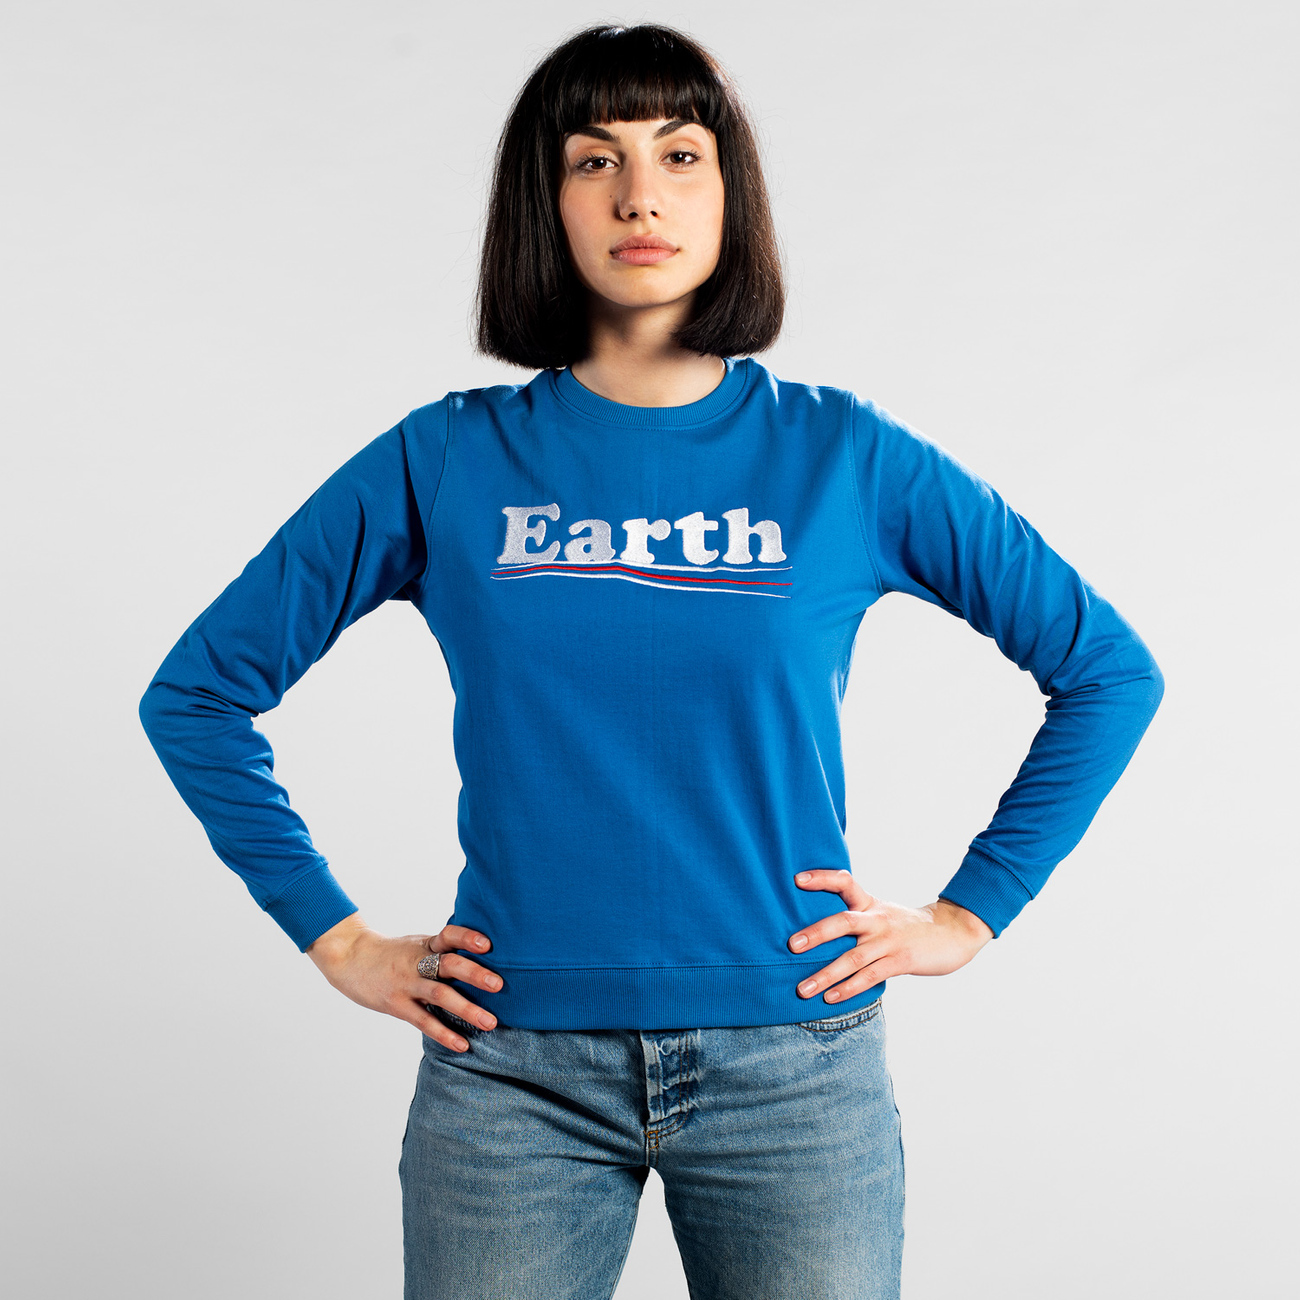 Sweatshirt Ystad Vote Earth